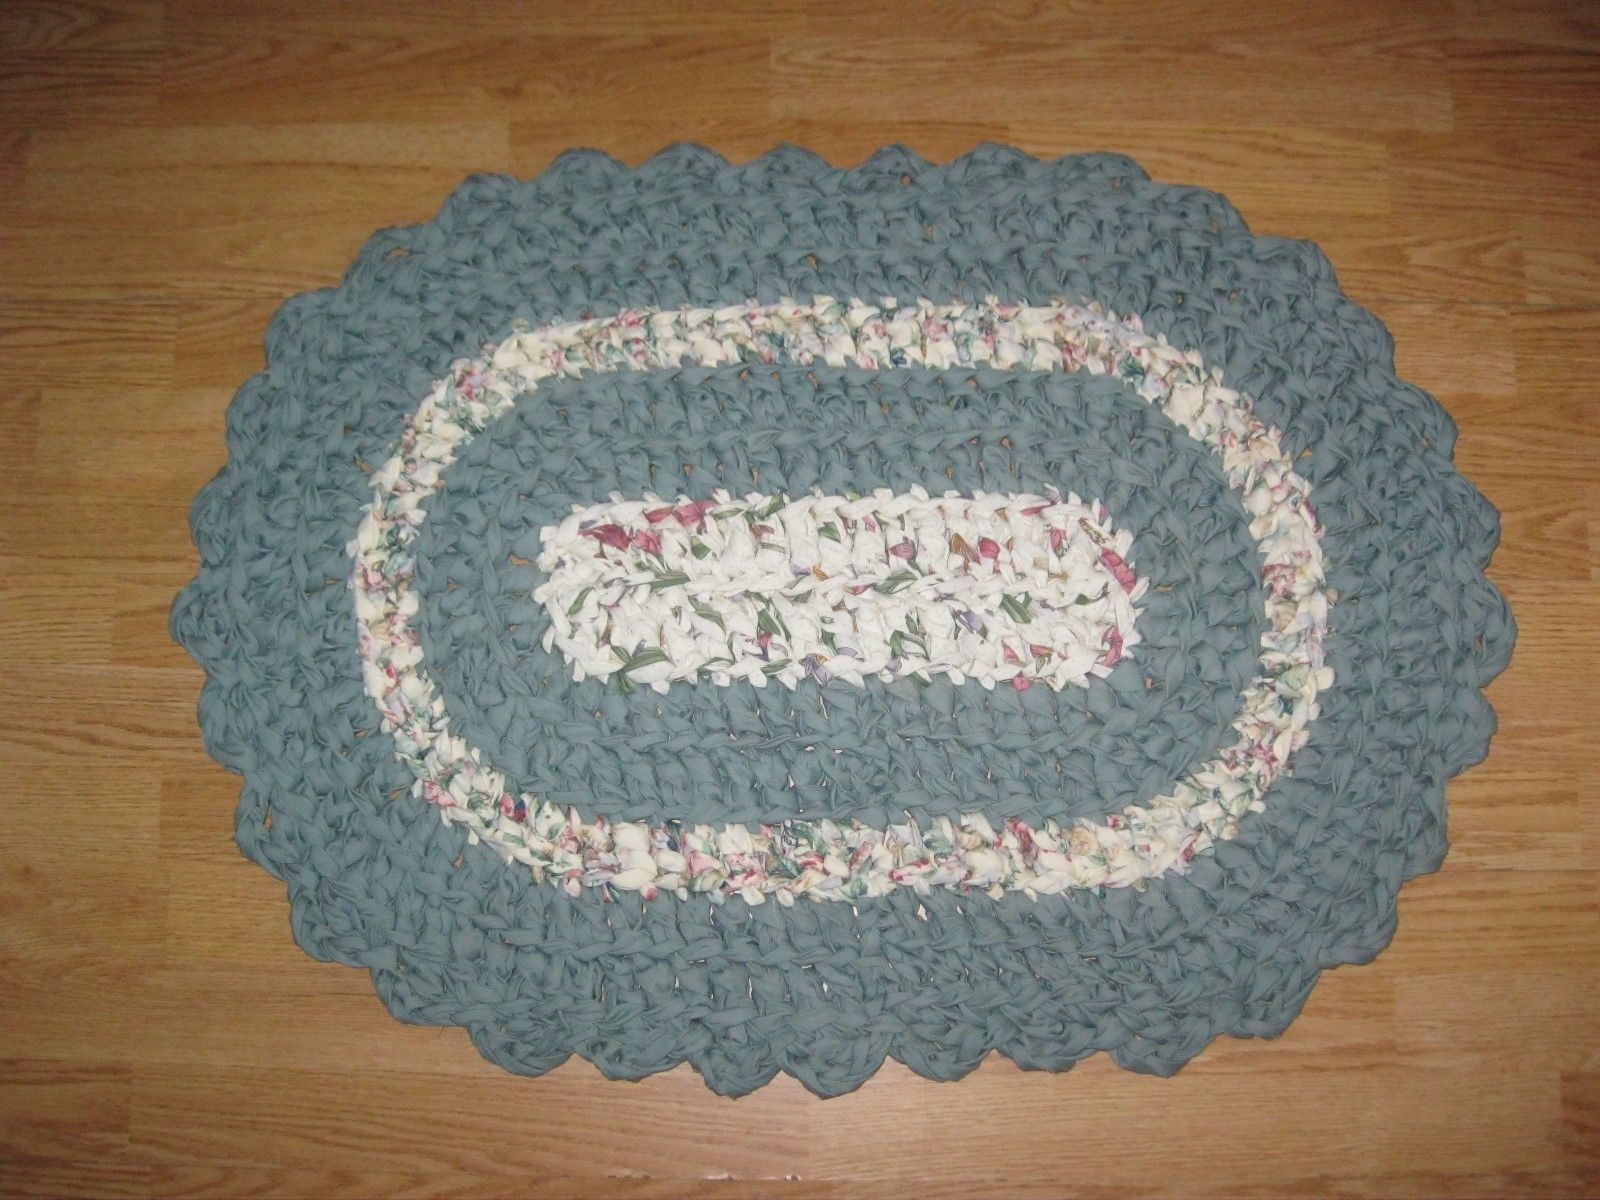 Woven Rag And Braided Rugs 160665 Fabric Rag Rug Oval 2 Floral Prints Misty Grn Solid Hand Crochet Wachine Wash 2 Buy It Rag Rug Hand Crochet Floral Prints